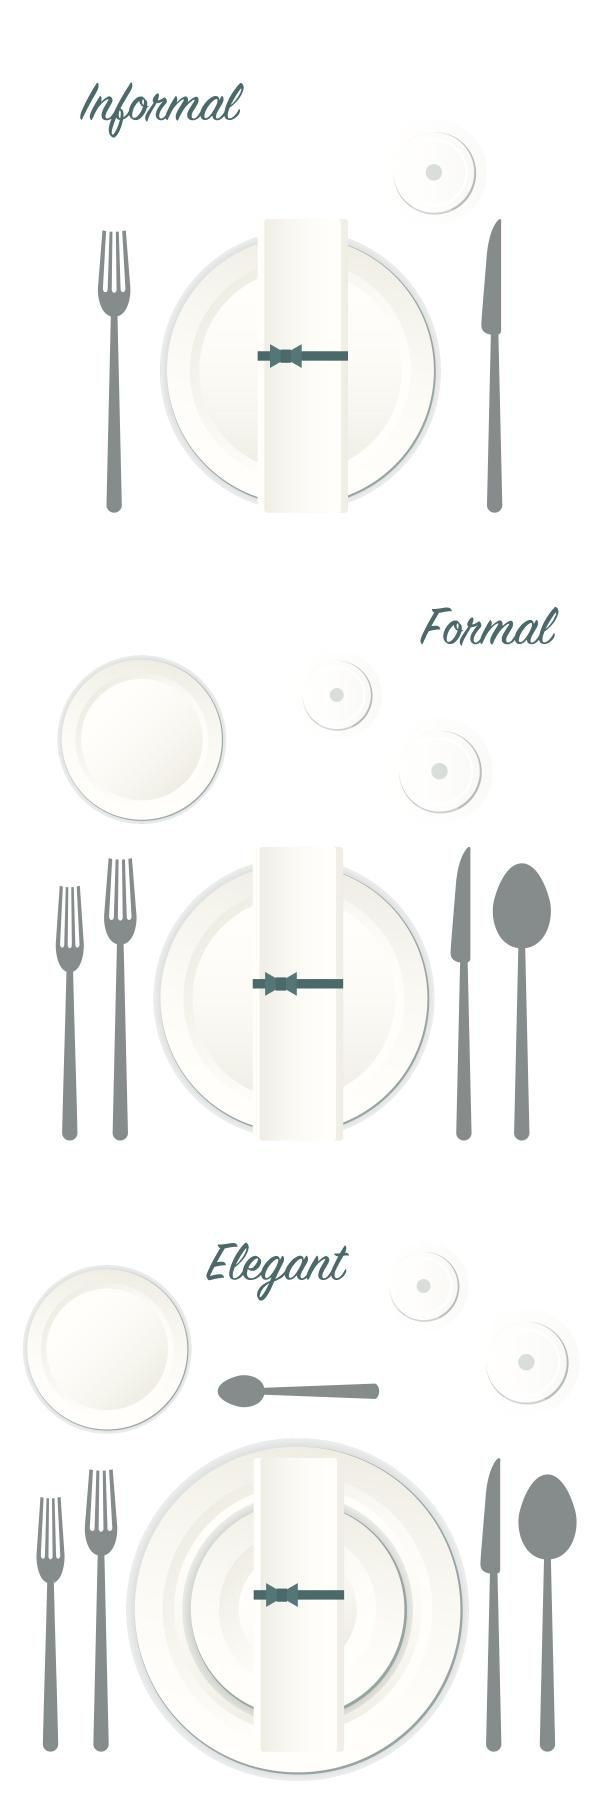 Proper table setting diagram diagram of a formal table setting - Learn How To Set The Dinner Table For Every Occasion Kirkland S Shows You Table Settings